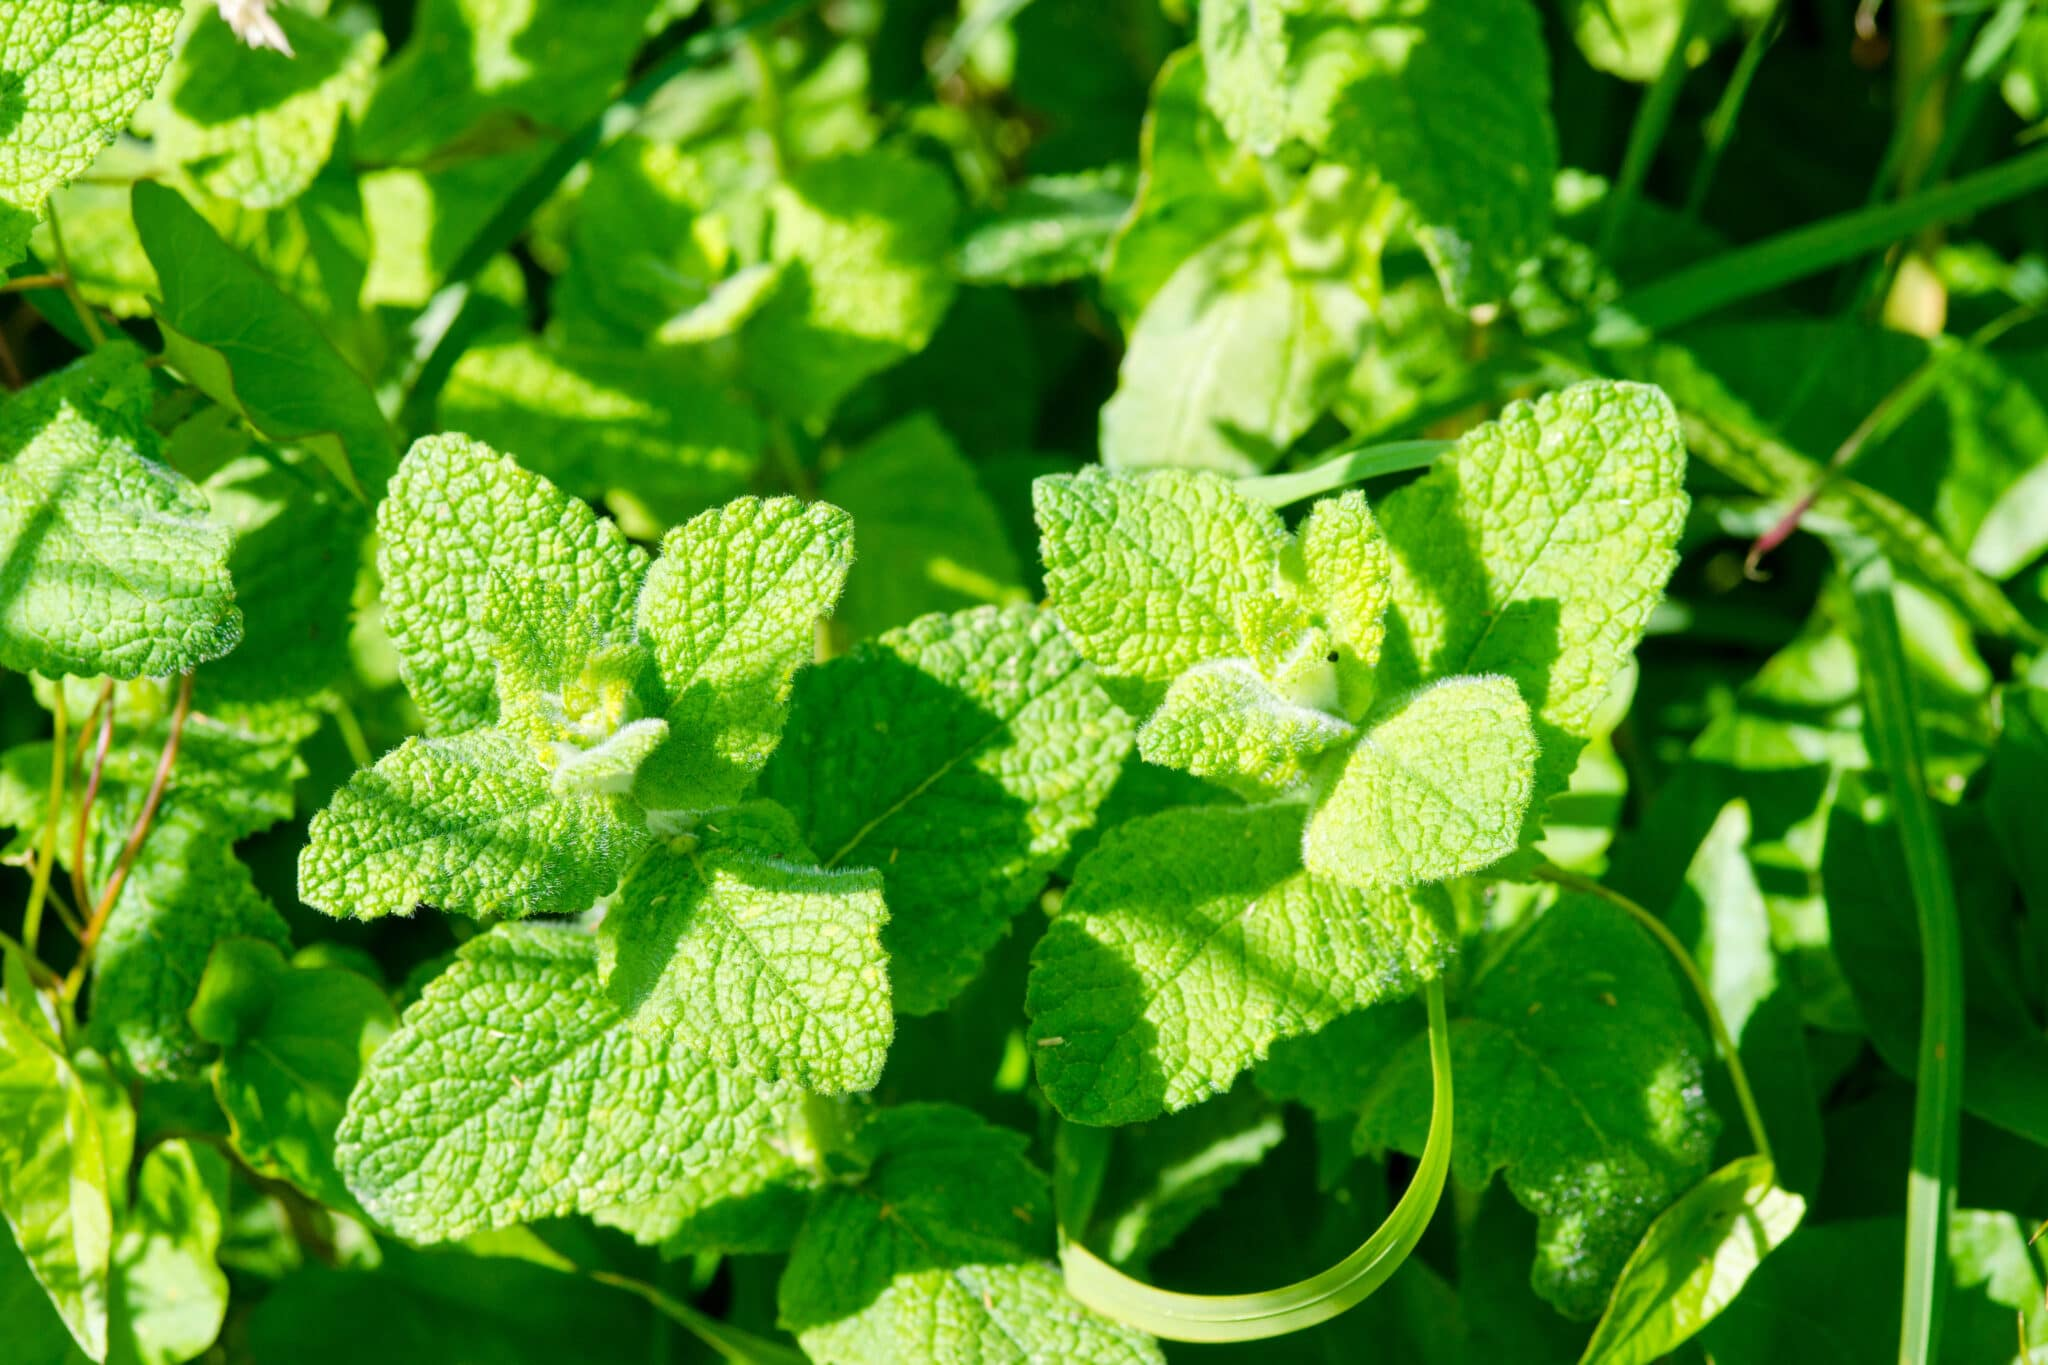 Apple mint growing outdoors, showing the fuzzy leaves that can be used to identify these types of mint.